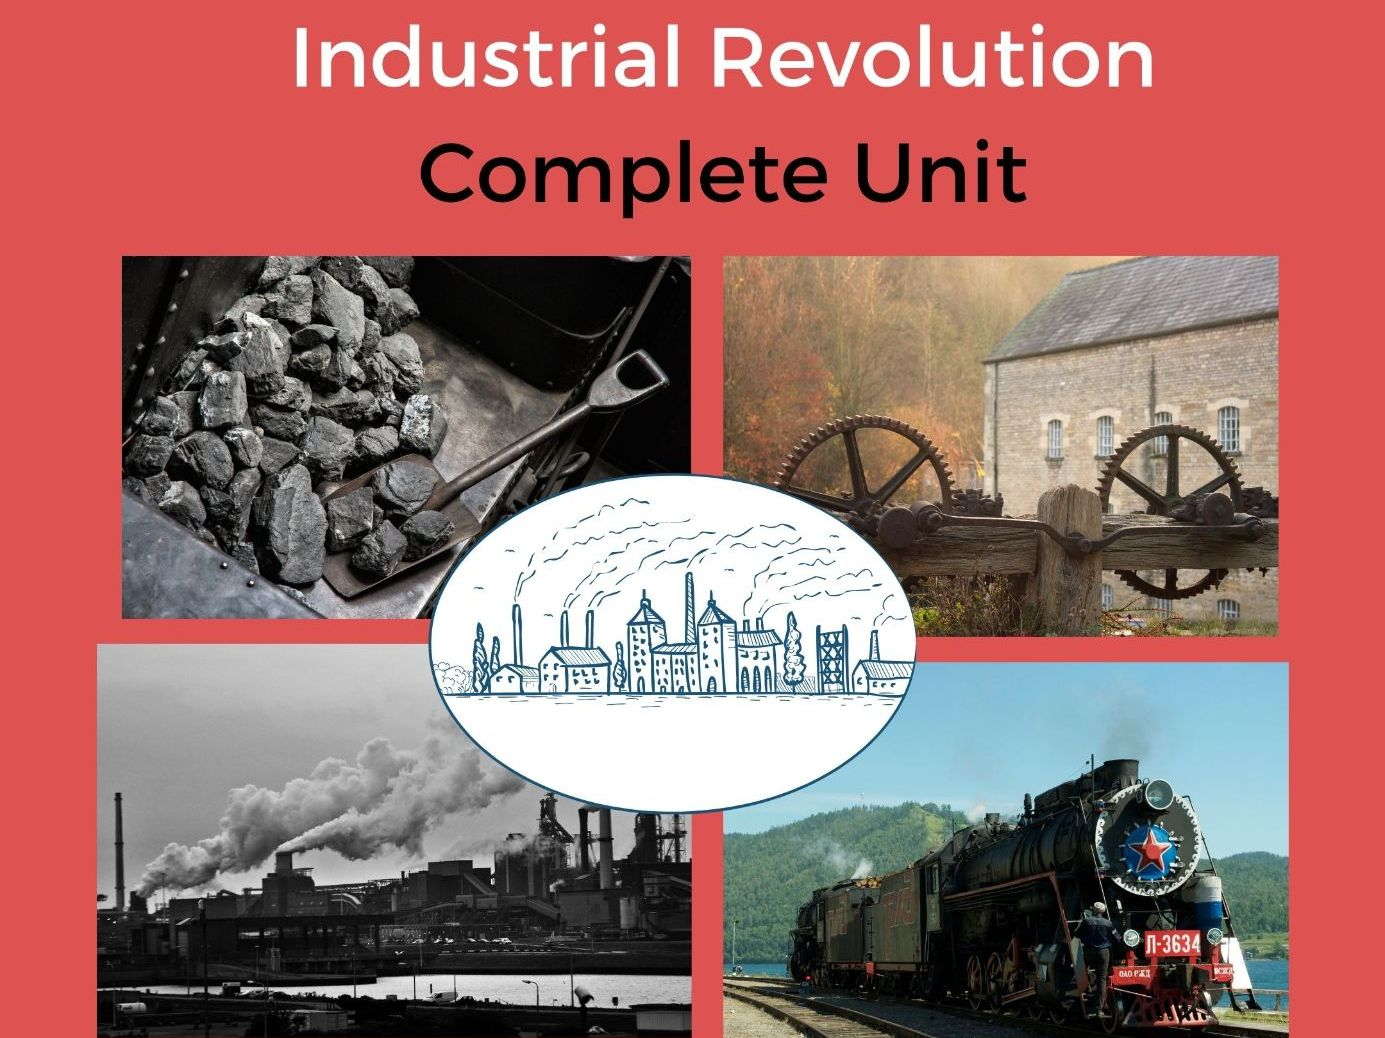 Industrial Revolution - Complete Unit